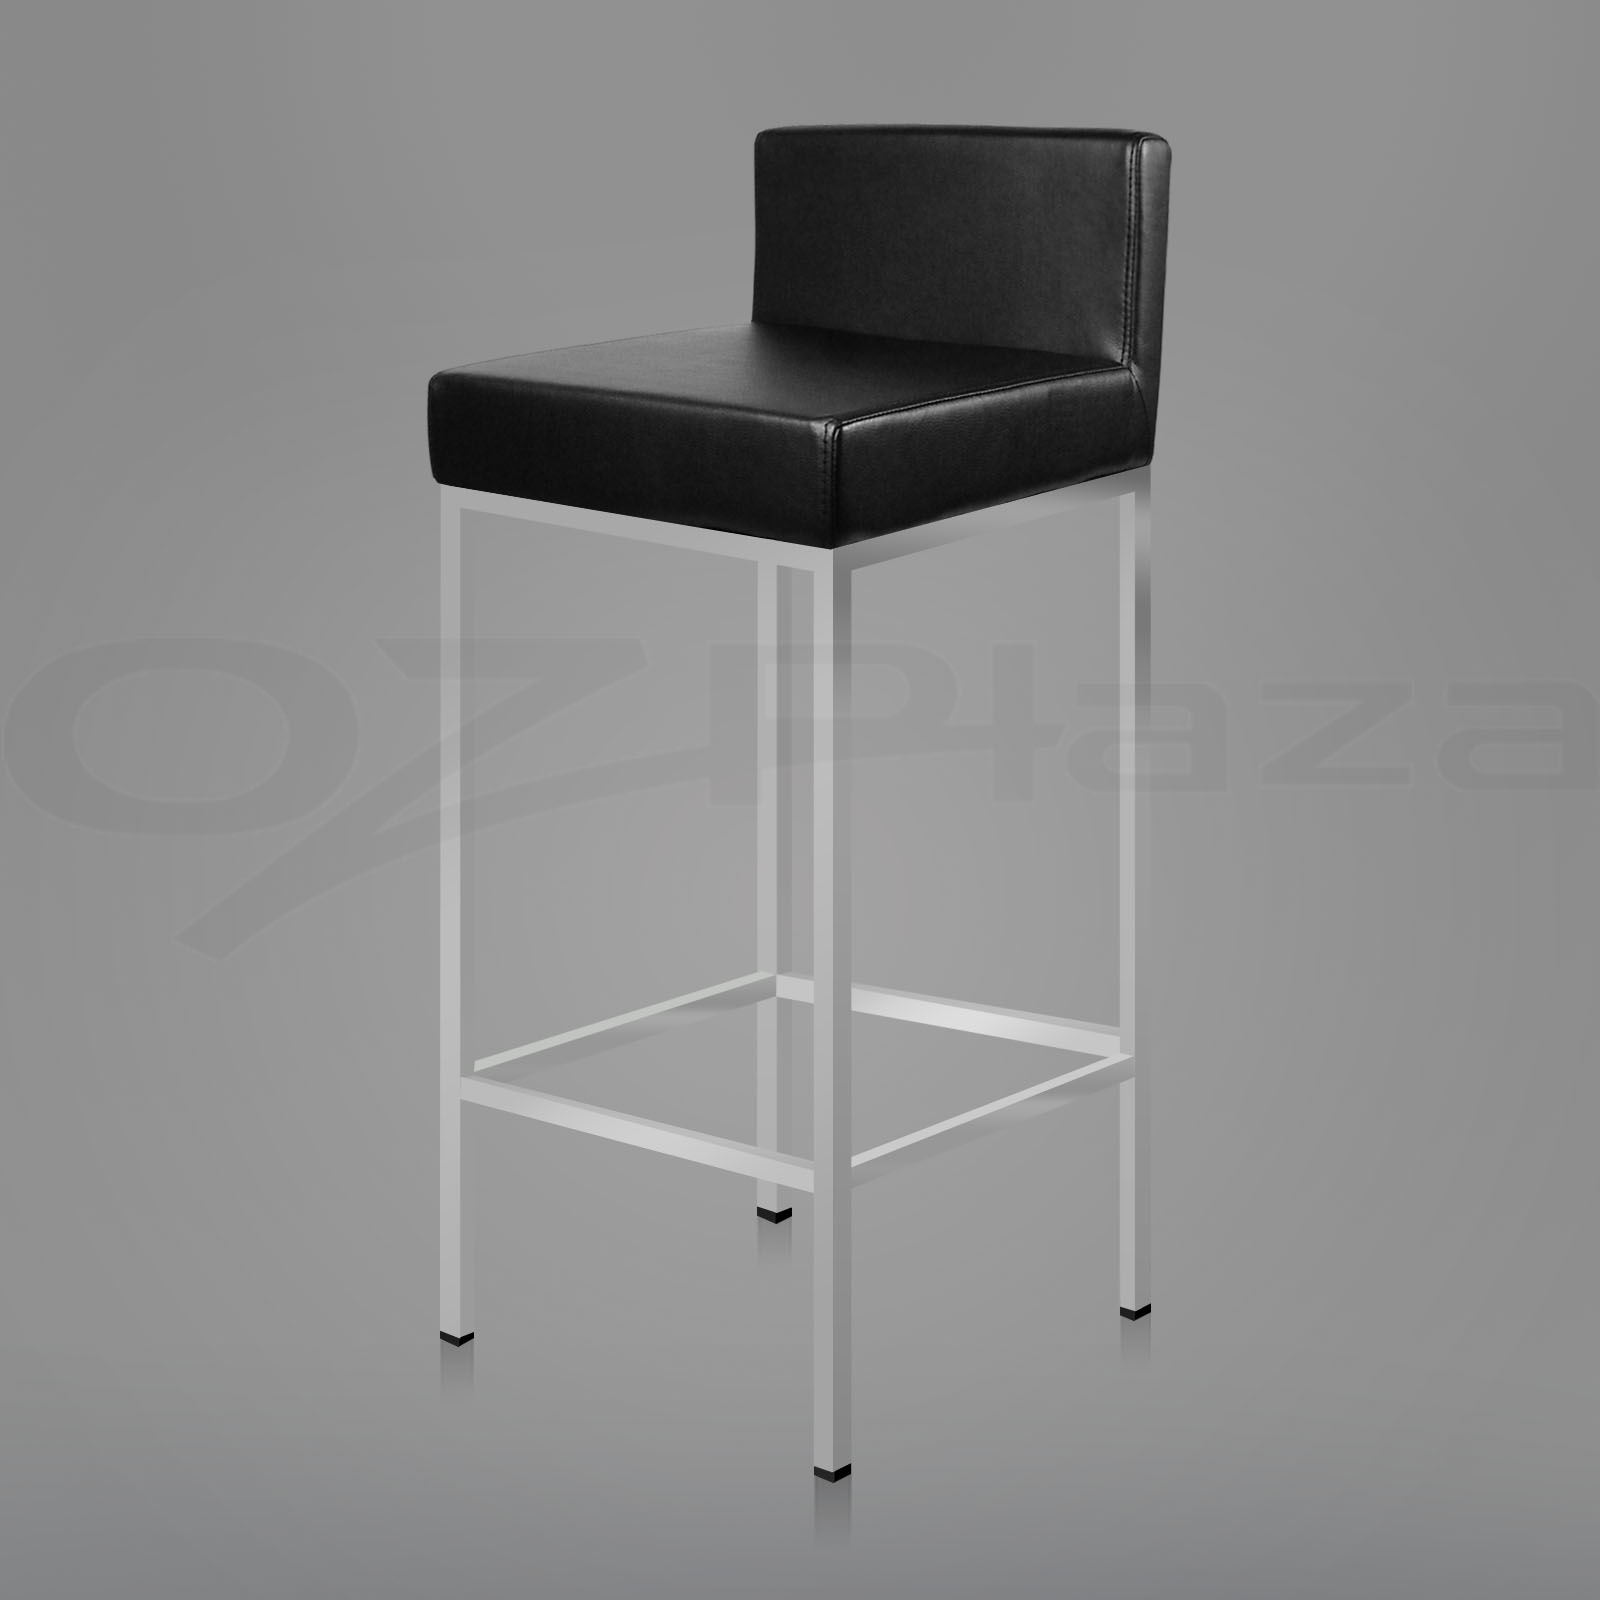 bar stool chair legs office desk chairs target 2x pu leather modern kitchen barstool